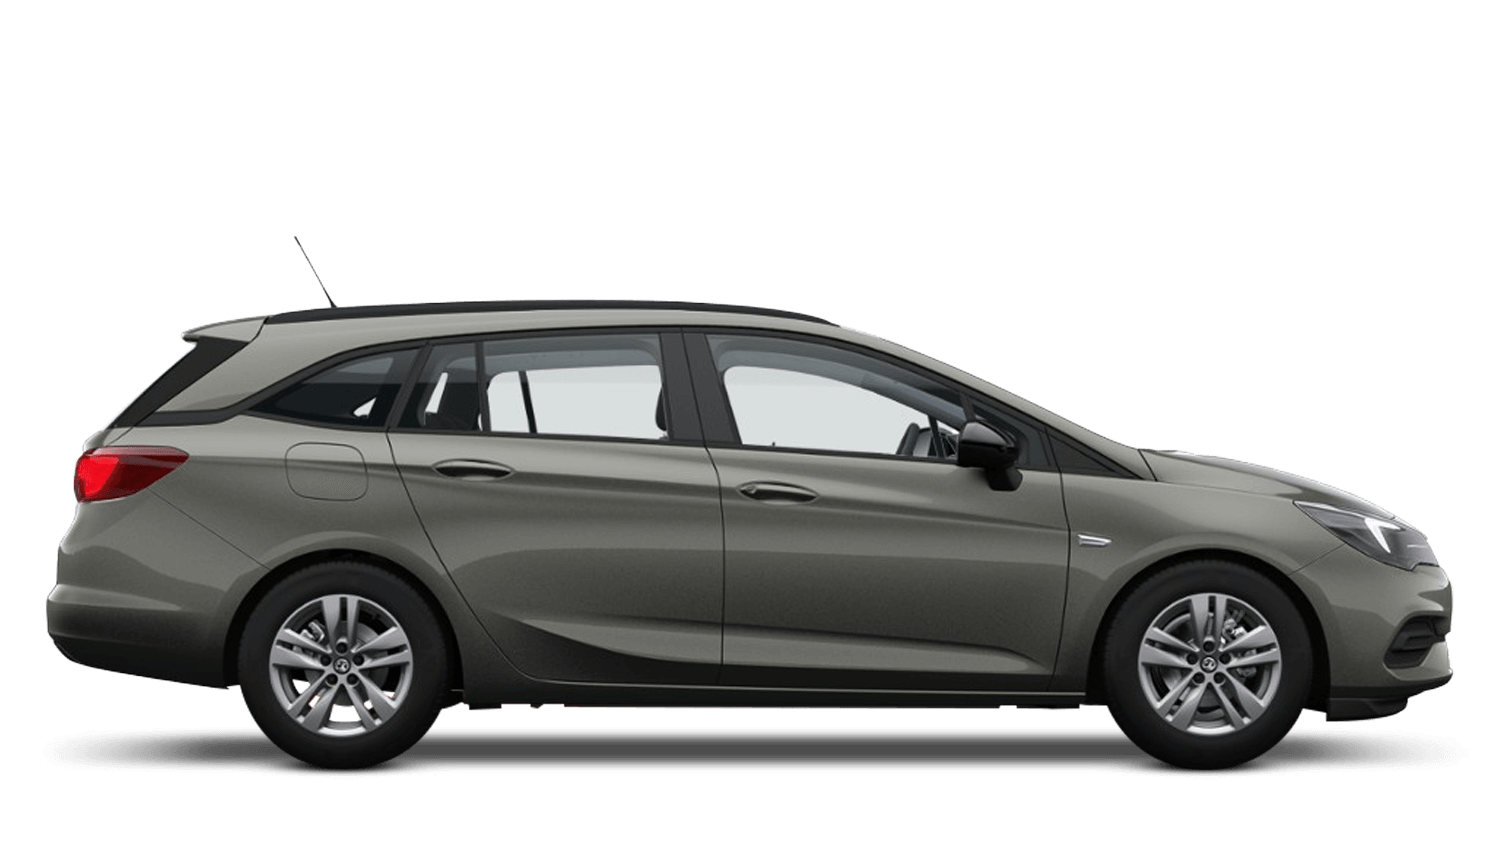 Cosmic Grey (Metallic) New Vauxhall Astra Sports Tourer